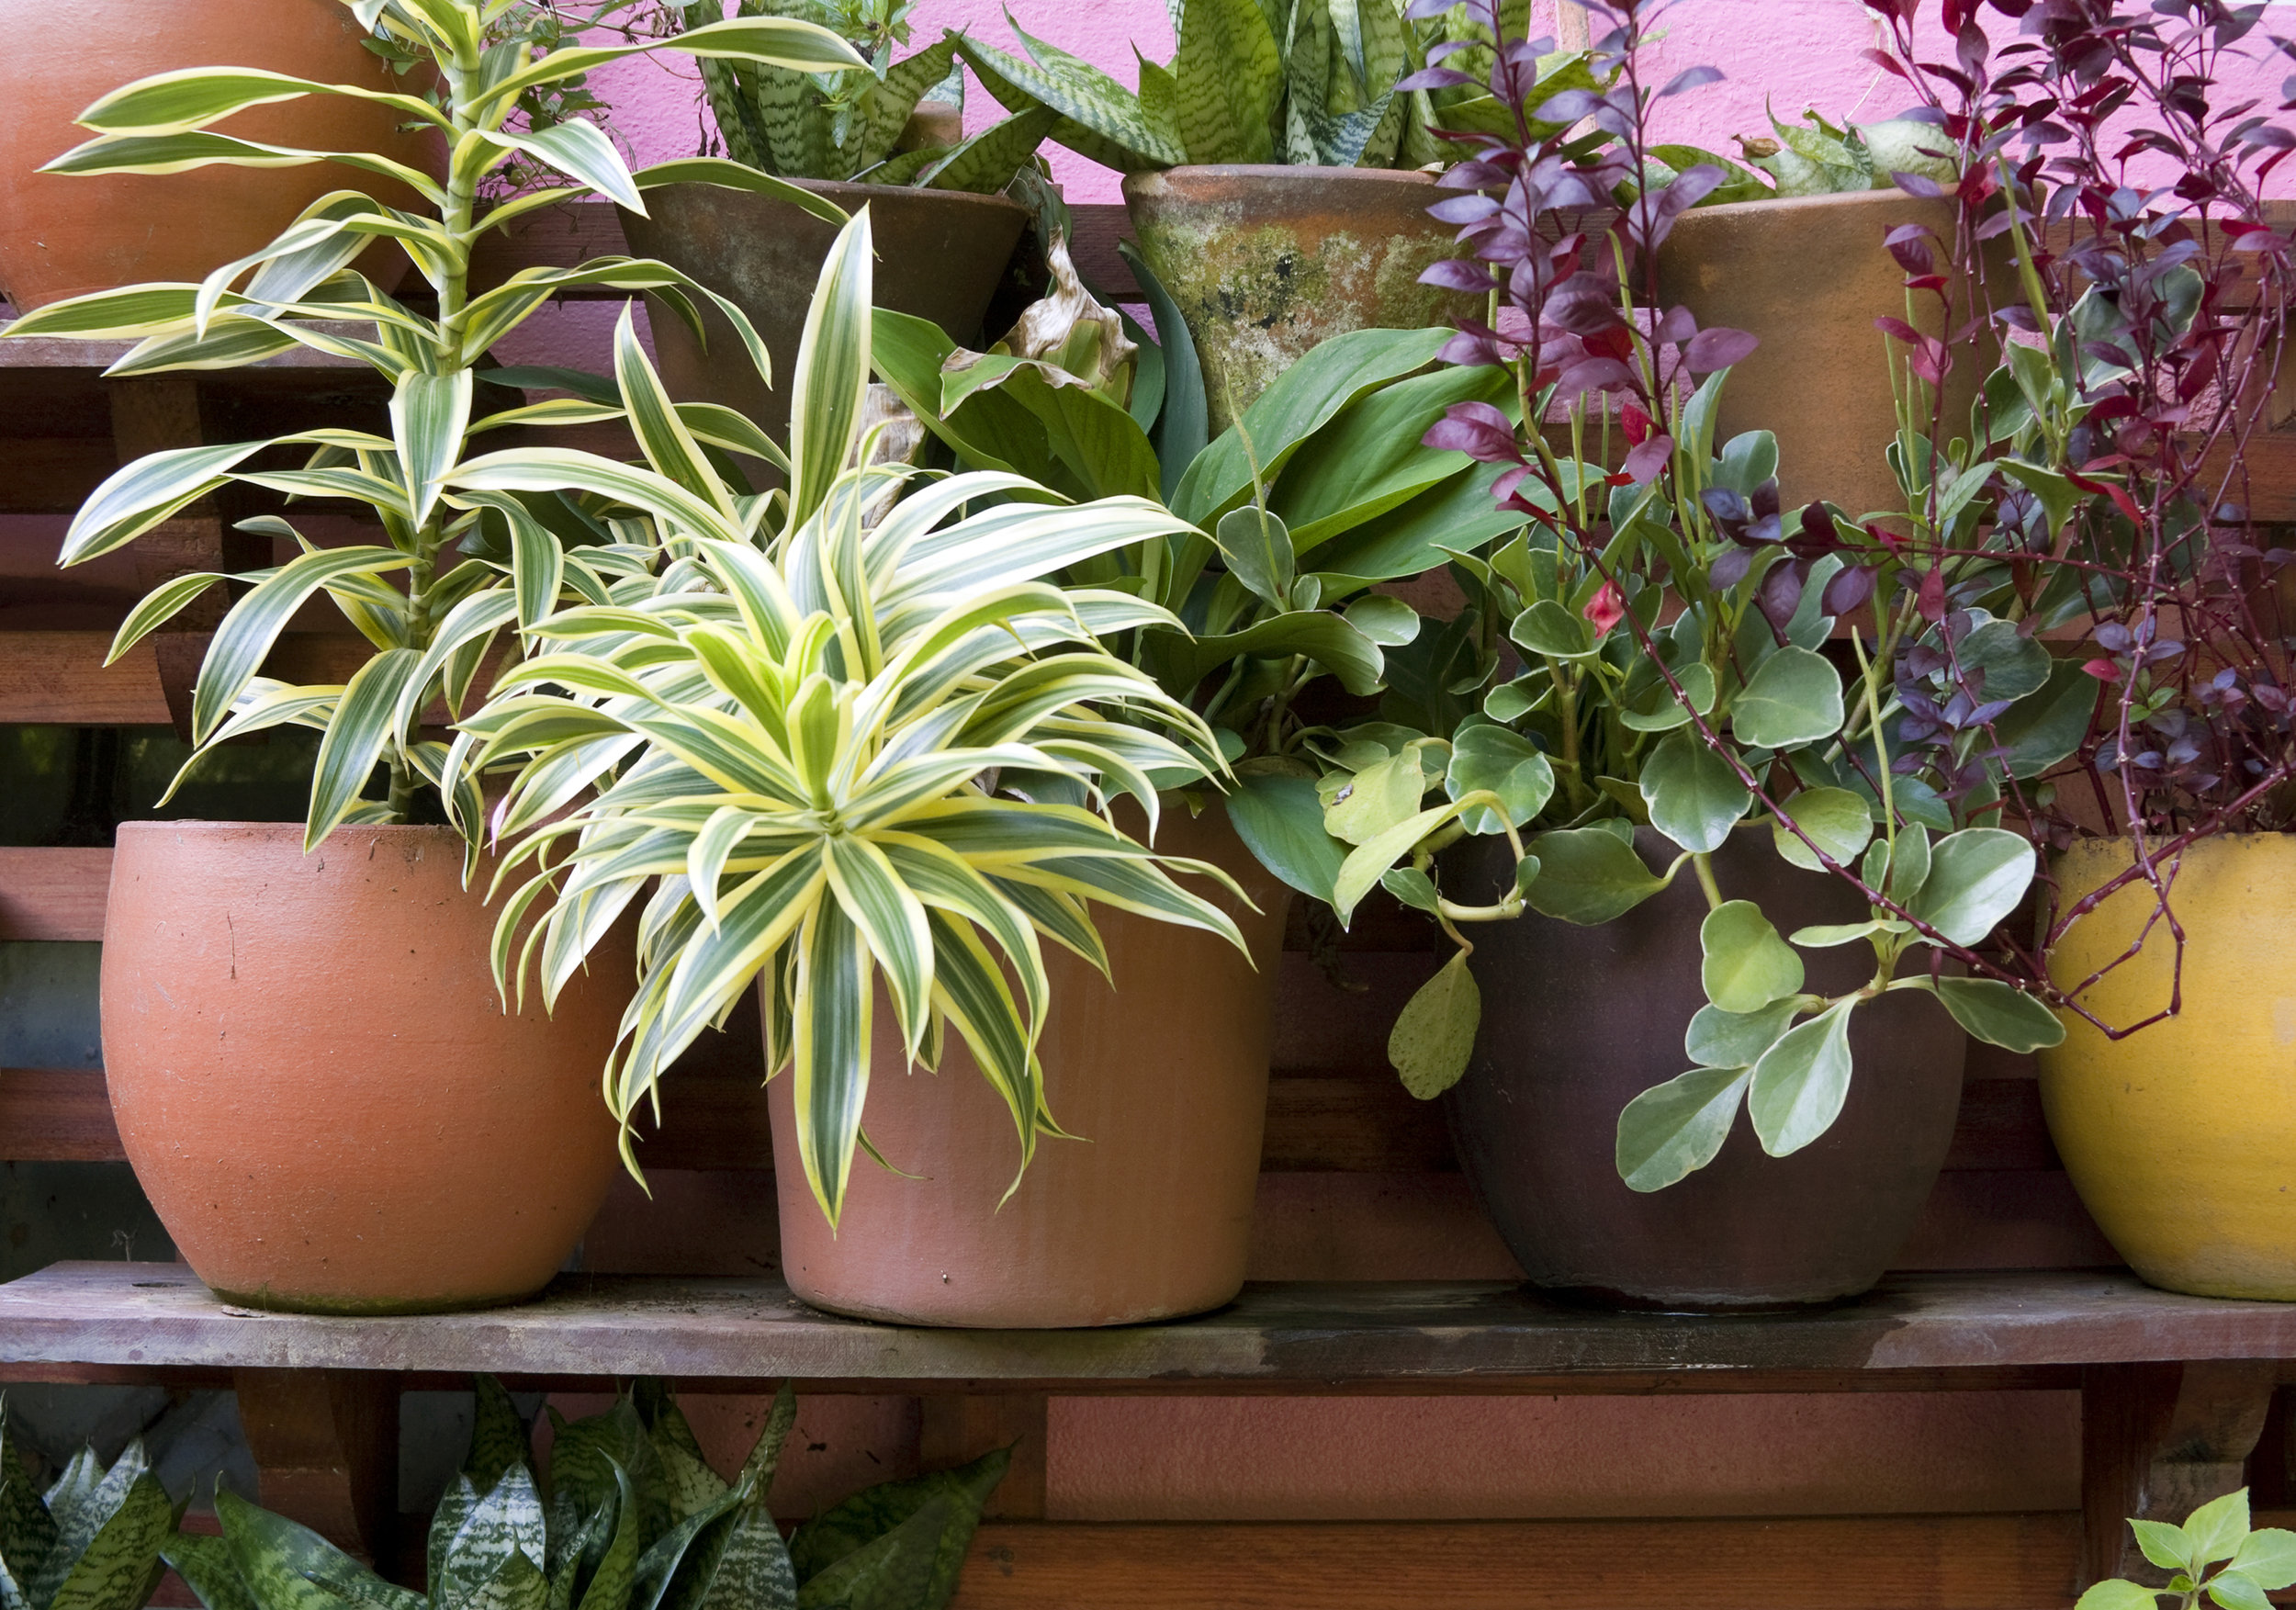 PLANTS aRE aMAZING. - We give them a little water, and they give us a more beautiful, vibrant, healthy home. But what about when you can't water them?Whether it's a vacation, business travel or just a super busy week, use Plant Keeper® to keep your potted plants alive when you are not able to water them.Carefree Christmas Tree® gives you the gift of one less thing to worry about during the busy holidays — watering your Christmas tree.Carefree Christmas Tree and Plant Keeper are both non-toxic, environmentally friendly, and all-natural. One bottle treats up to 24 plants.